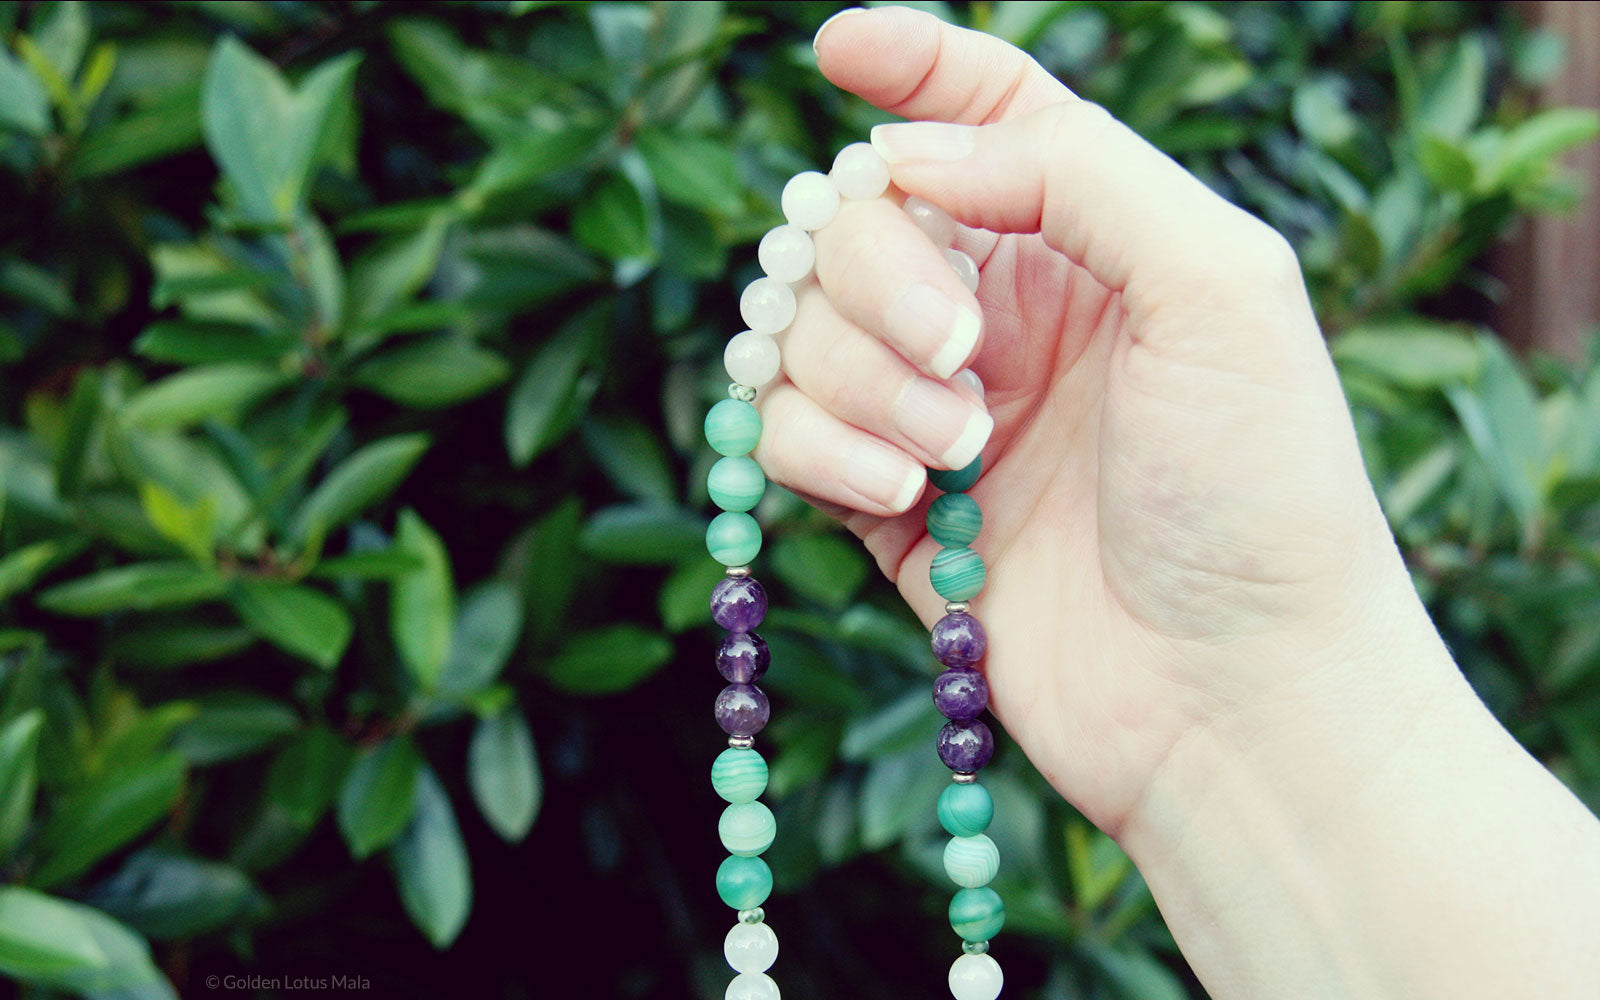 Holding Mala Beads the Proper Way